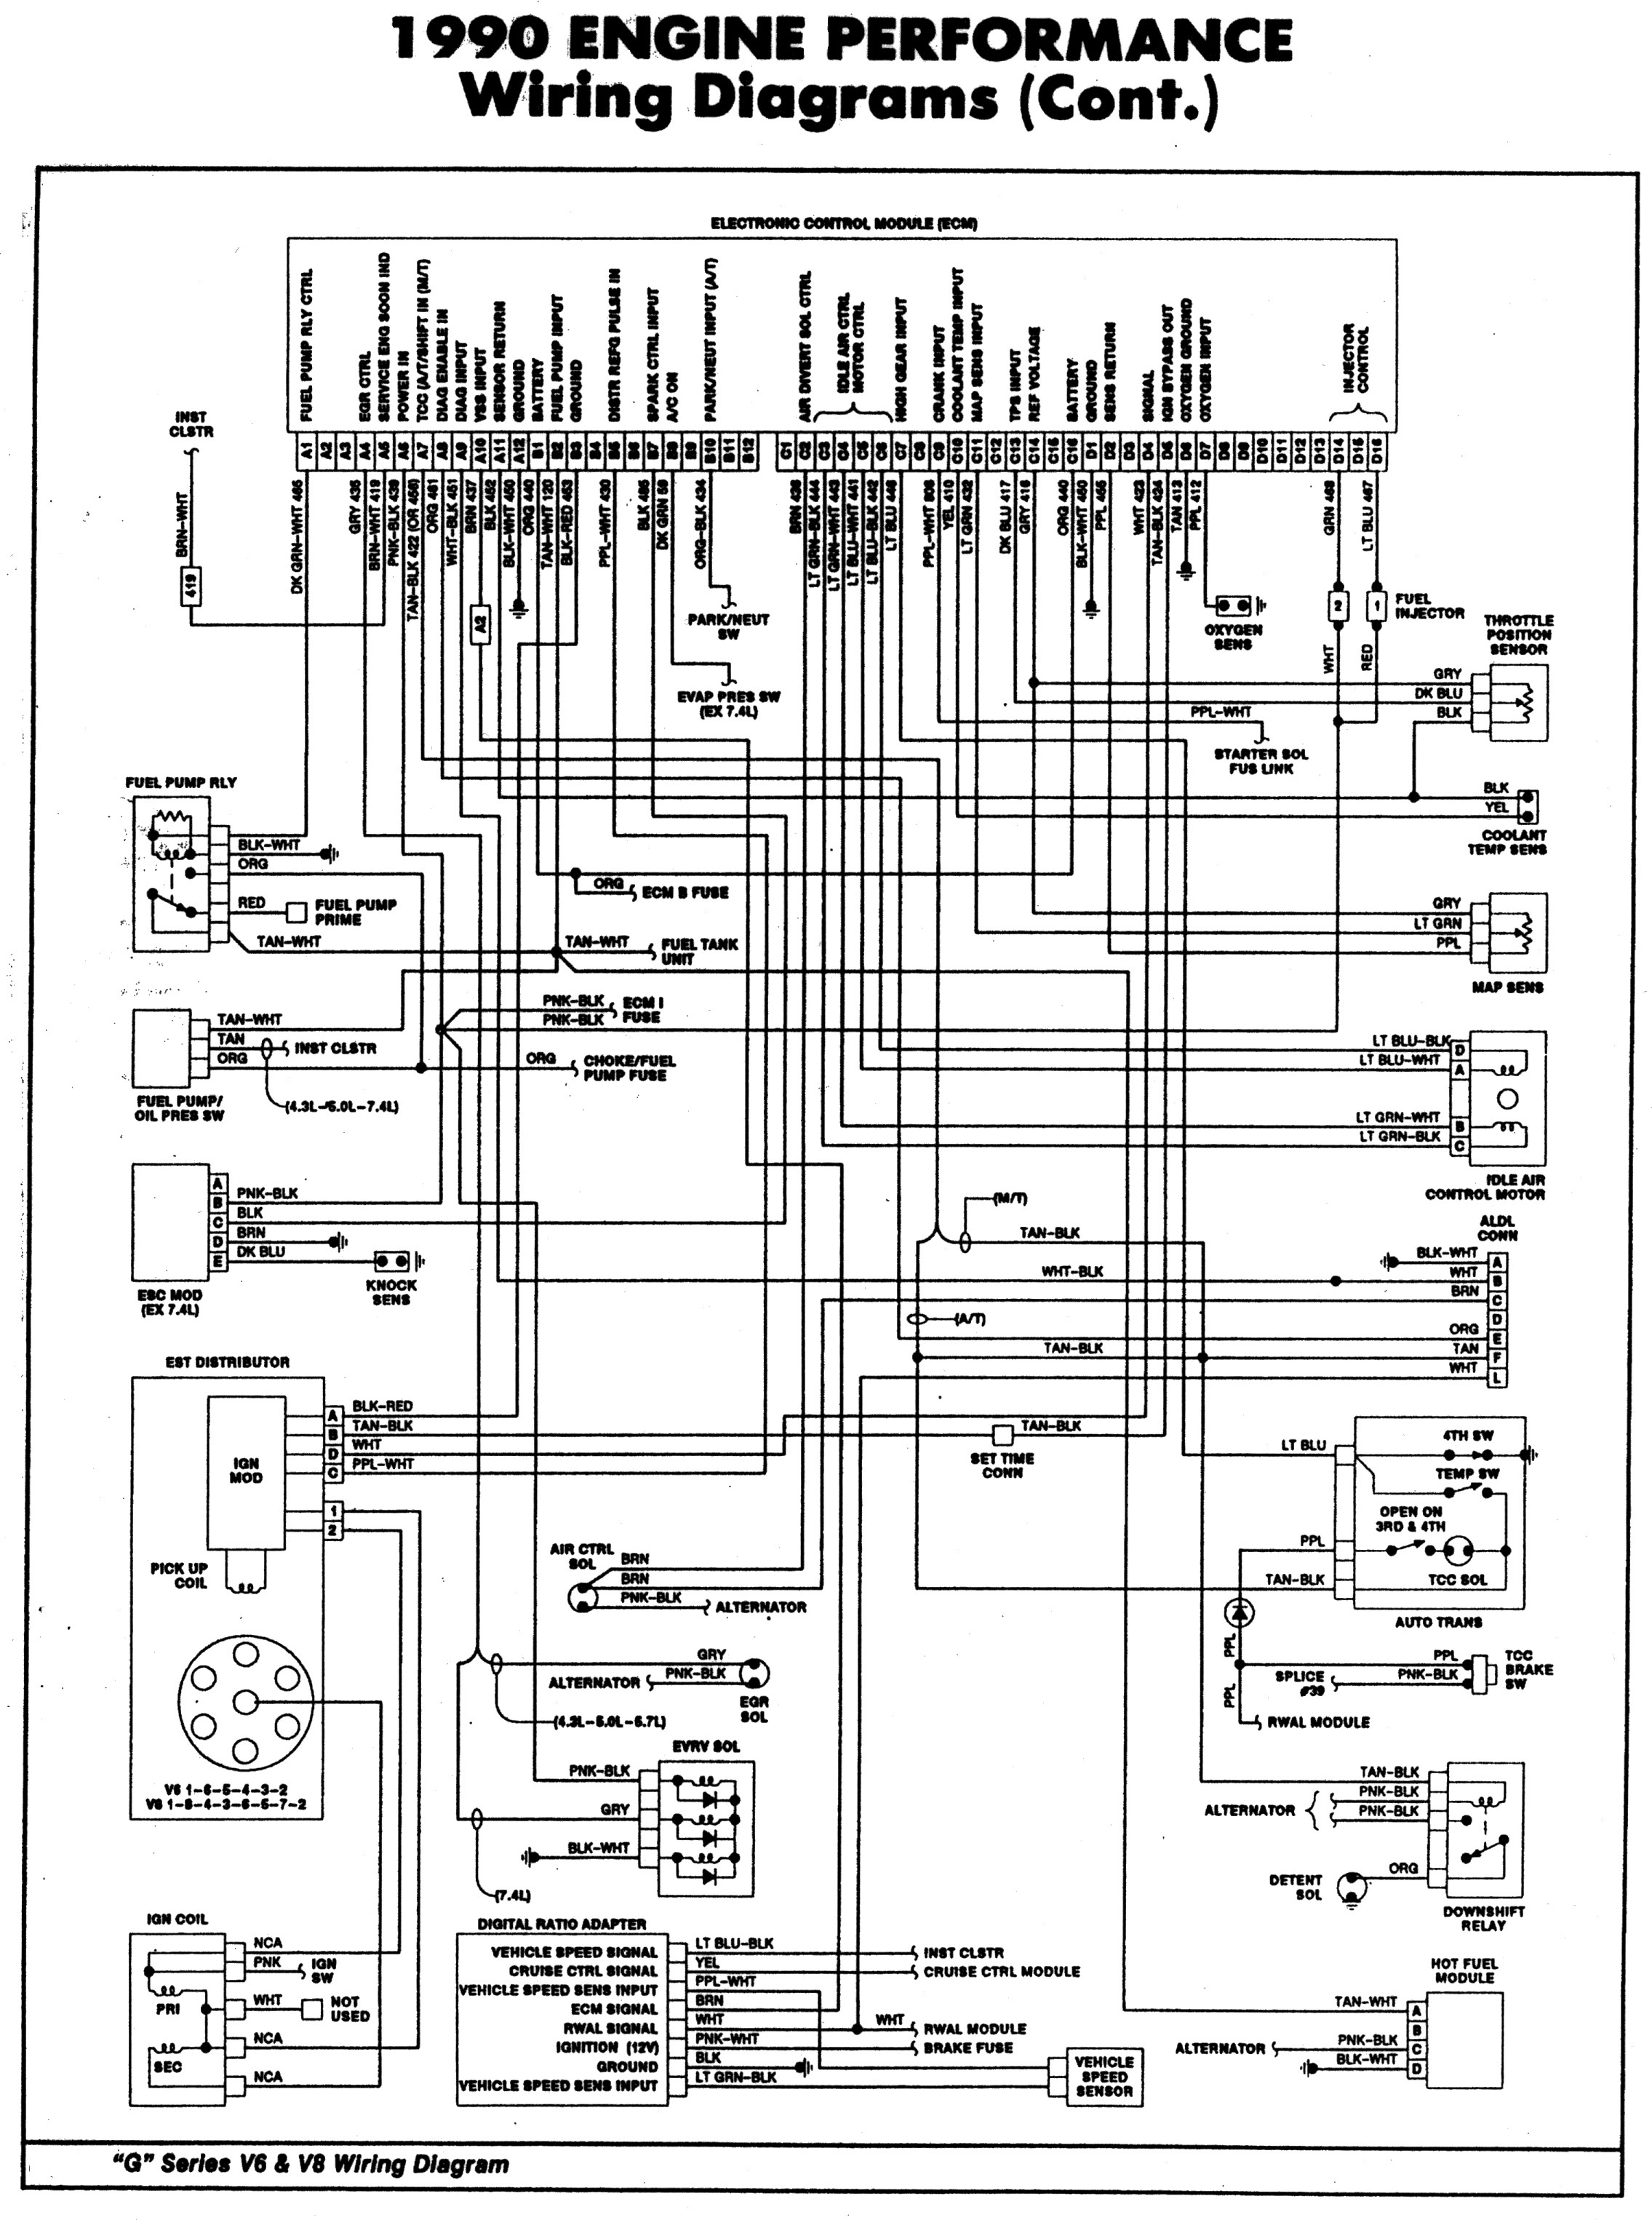 91 lumina wiring diagram wiring diagram yer 91 chevy suburban wiring diagram 91 lumina wiring diagram [ 2271 x 3051 Pixel ]